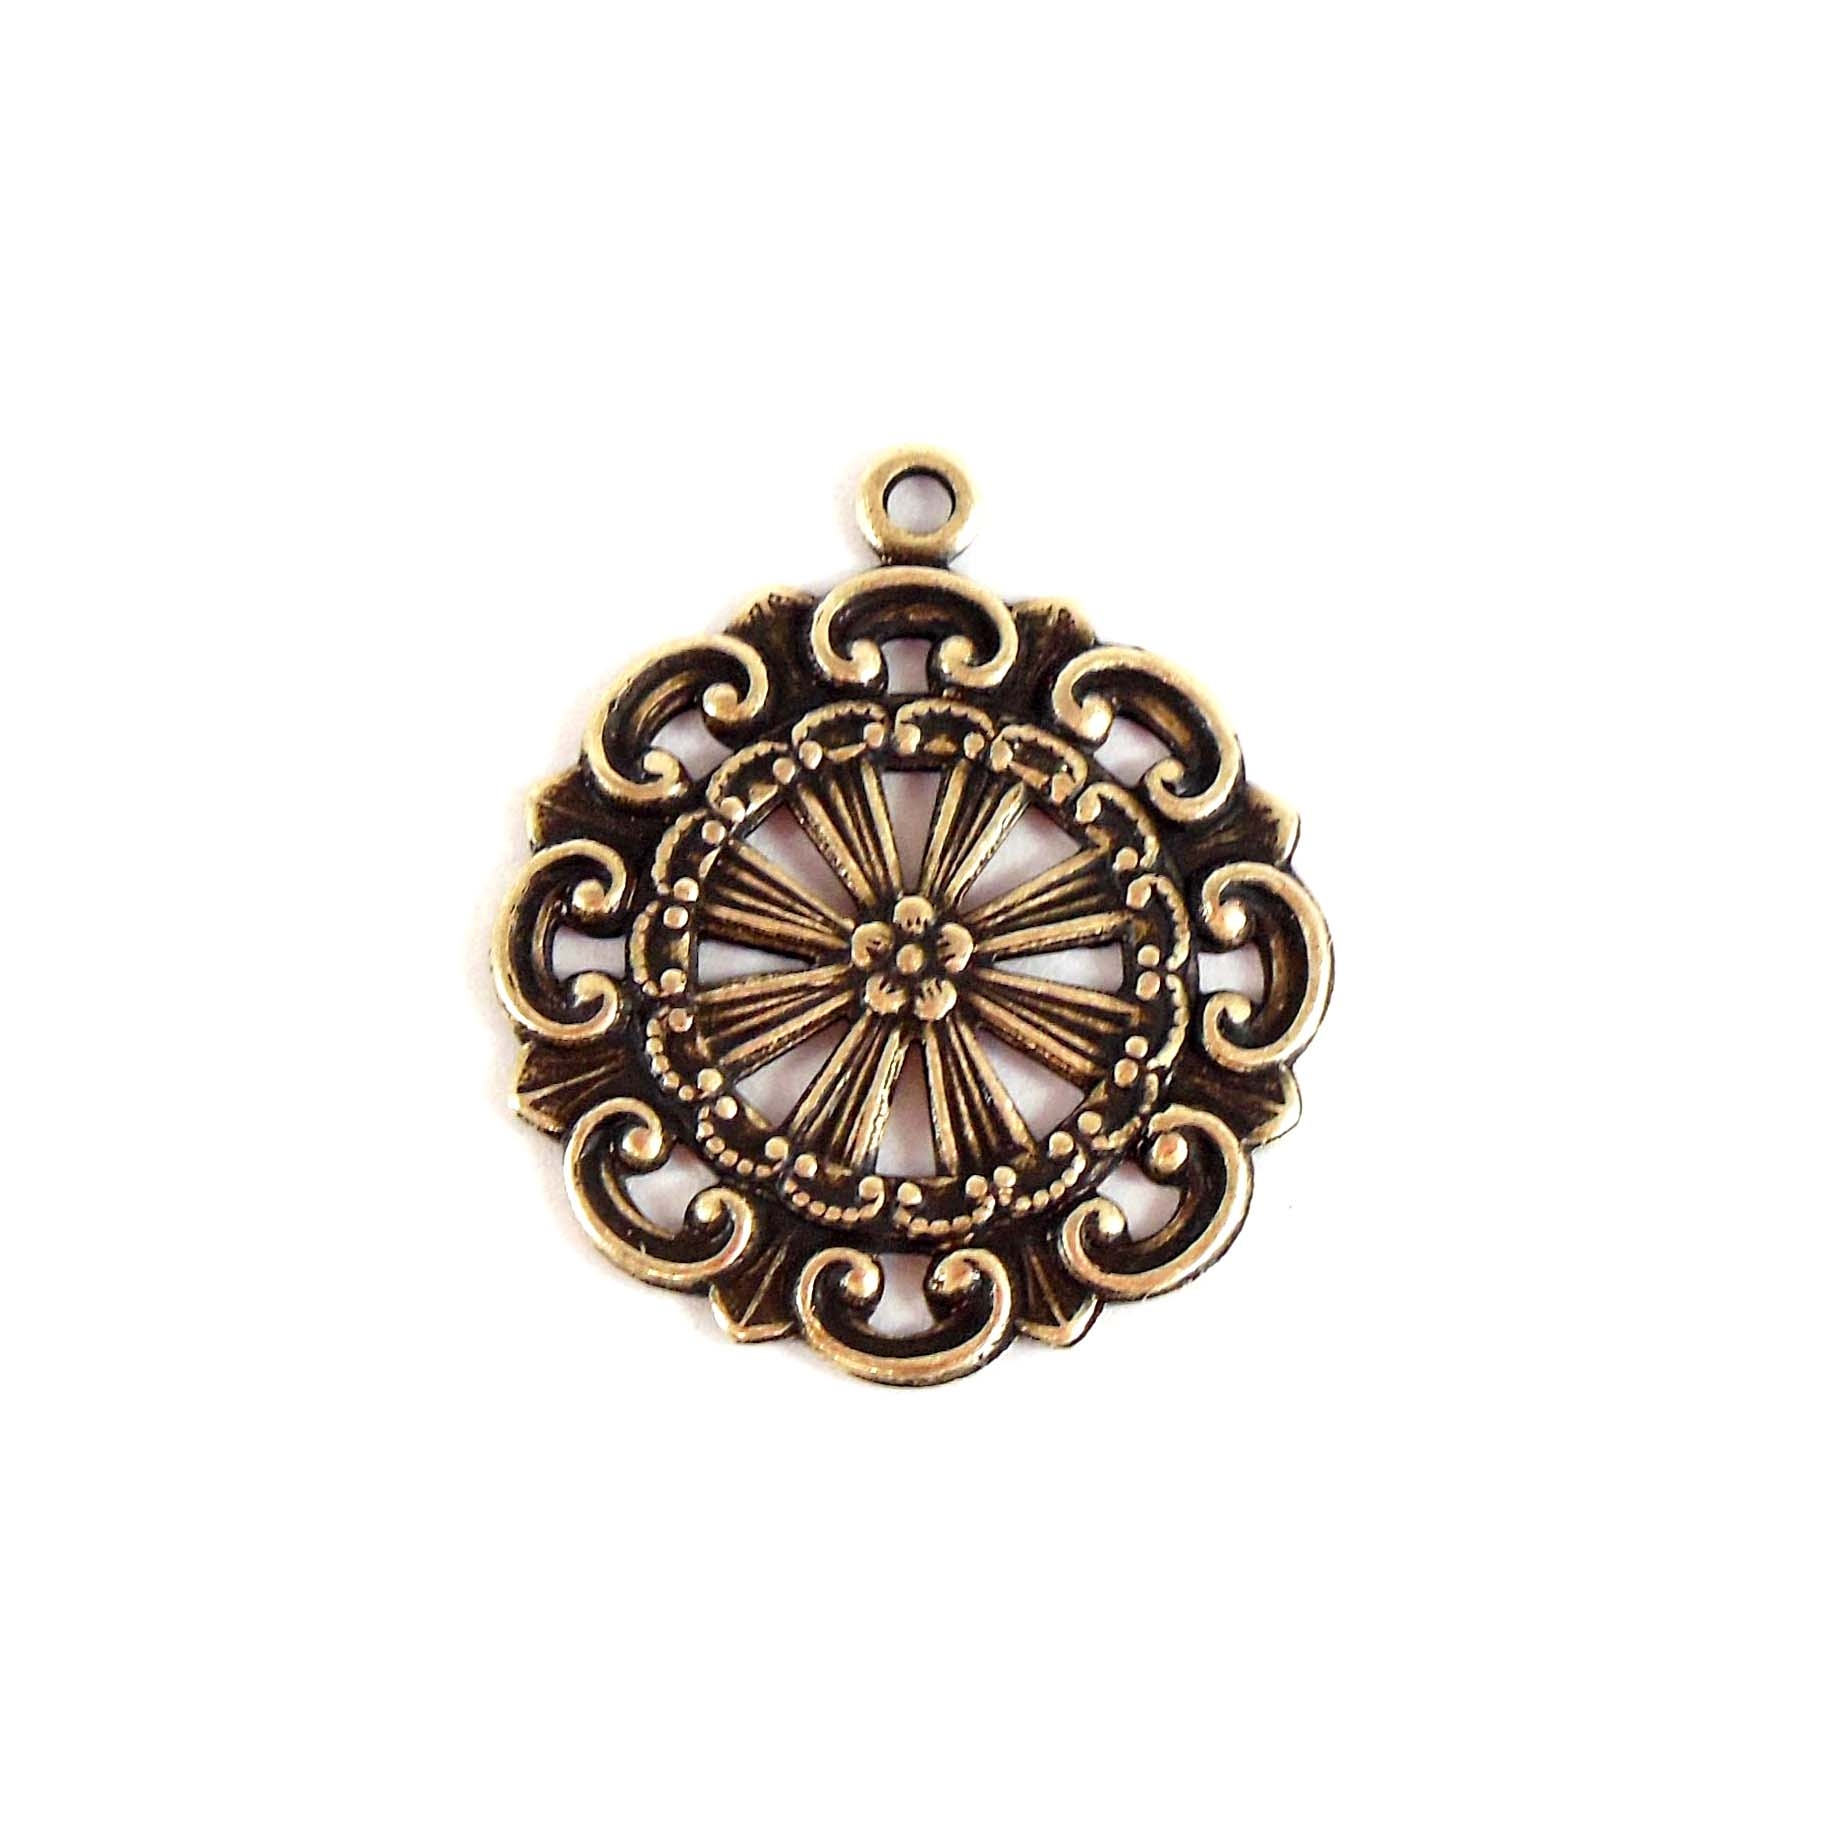 brass filigree, brass charms, brass ox, 06844, pendants, jewelry making, brass findings, vintage jewelry supplies, B'sue Boutiques, nickel free, US Made, pinwheel pendant, scalloped edge charms